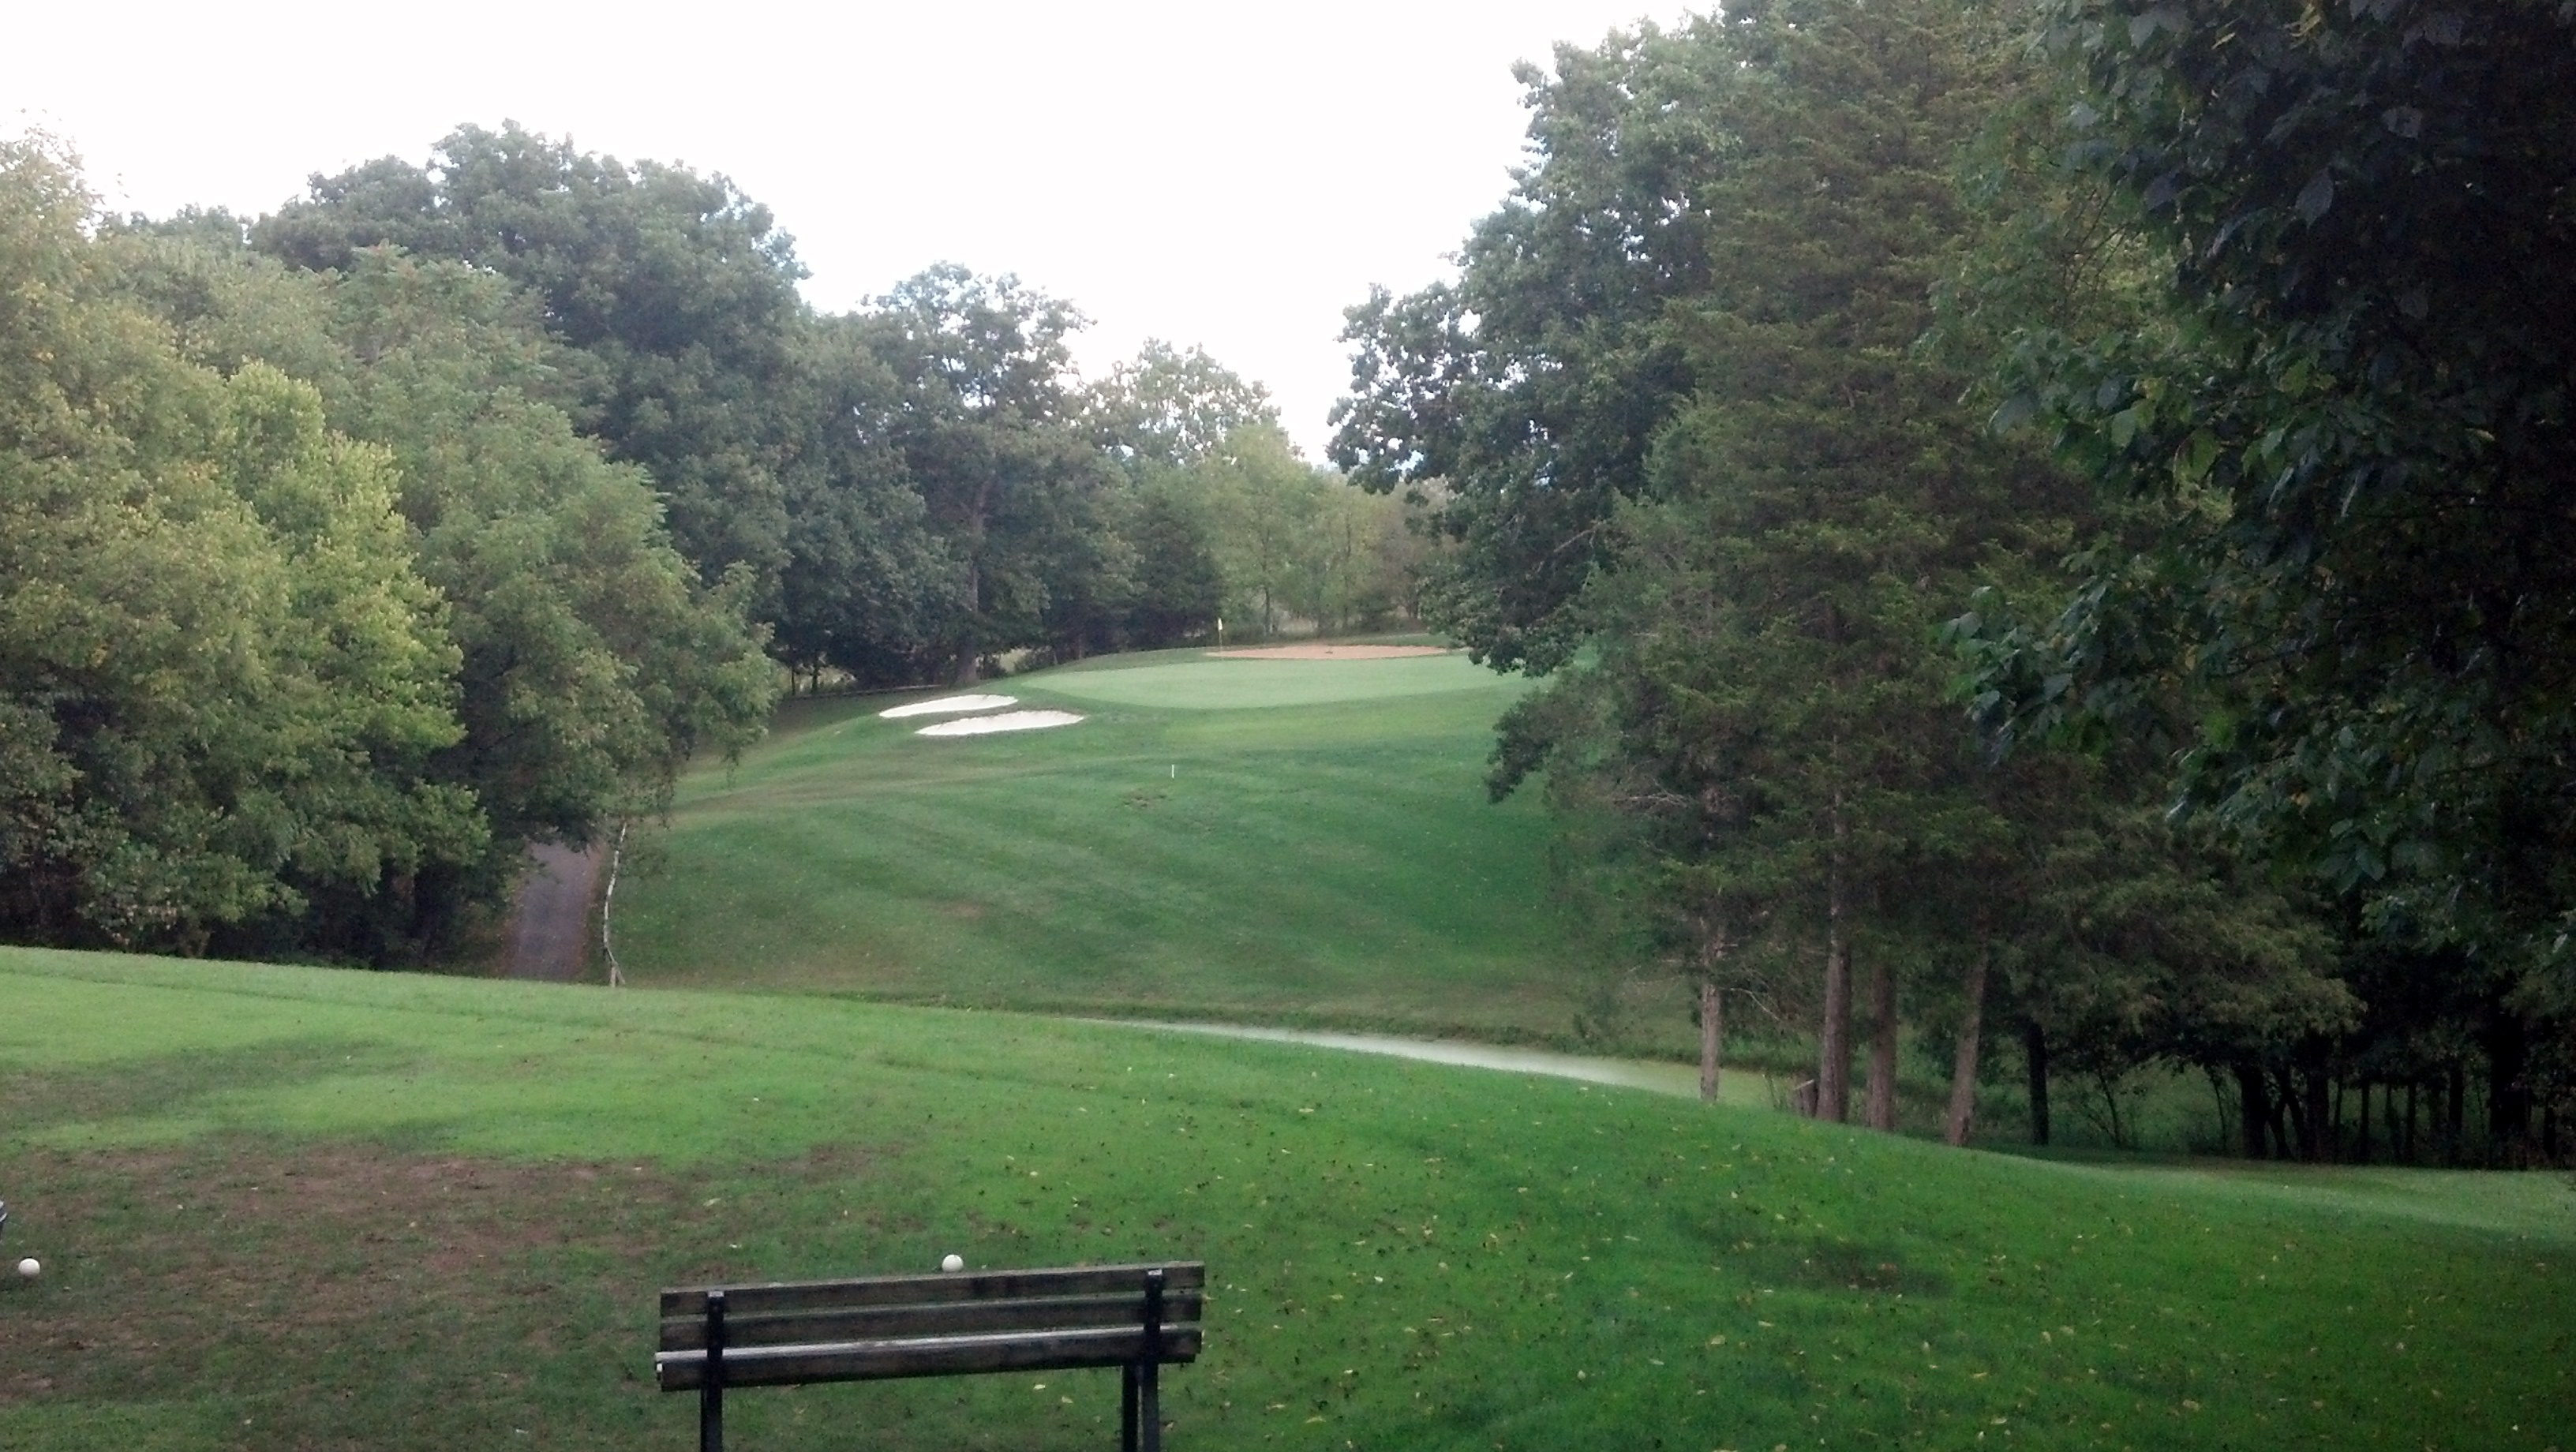 Caverns Country Club Resort Luray Va On 09 01 14